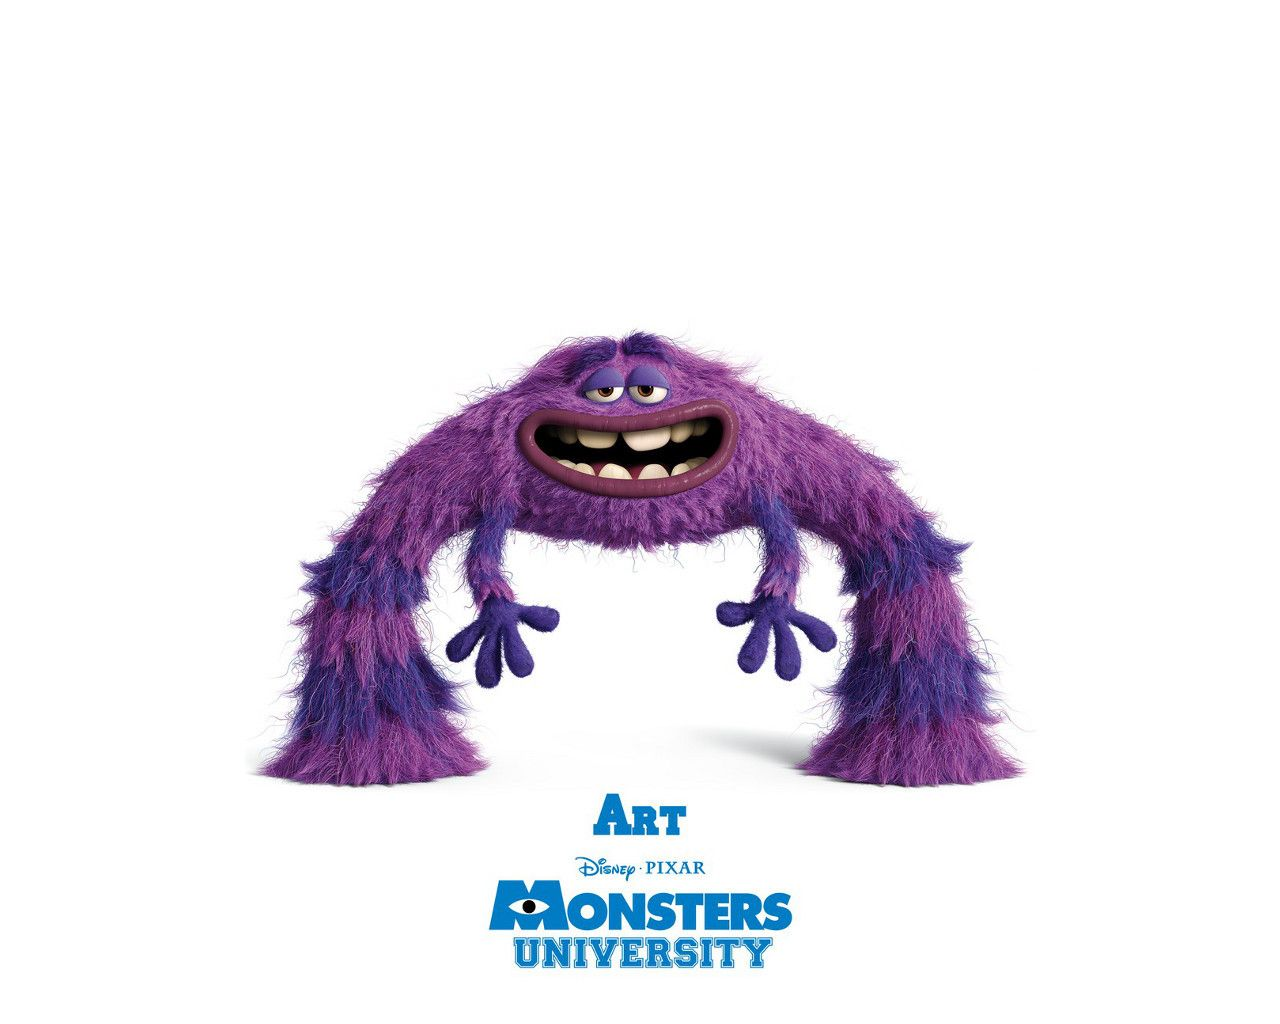 Art Monsters University Monster University Monsters Inc University Art Monsters University